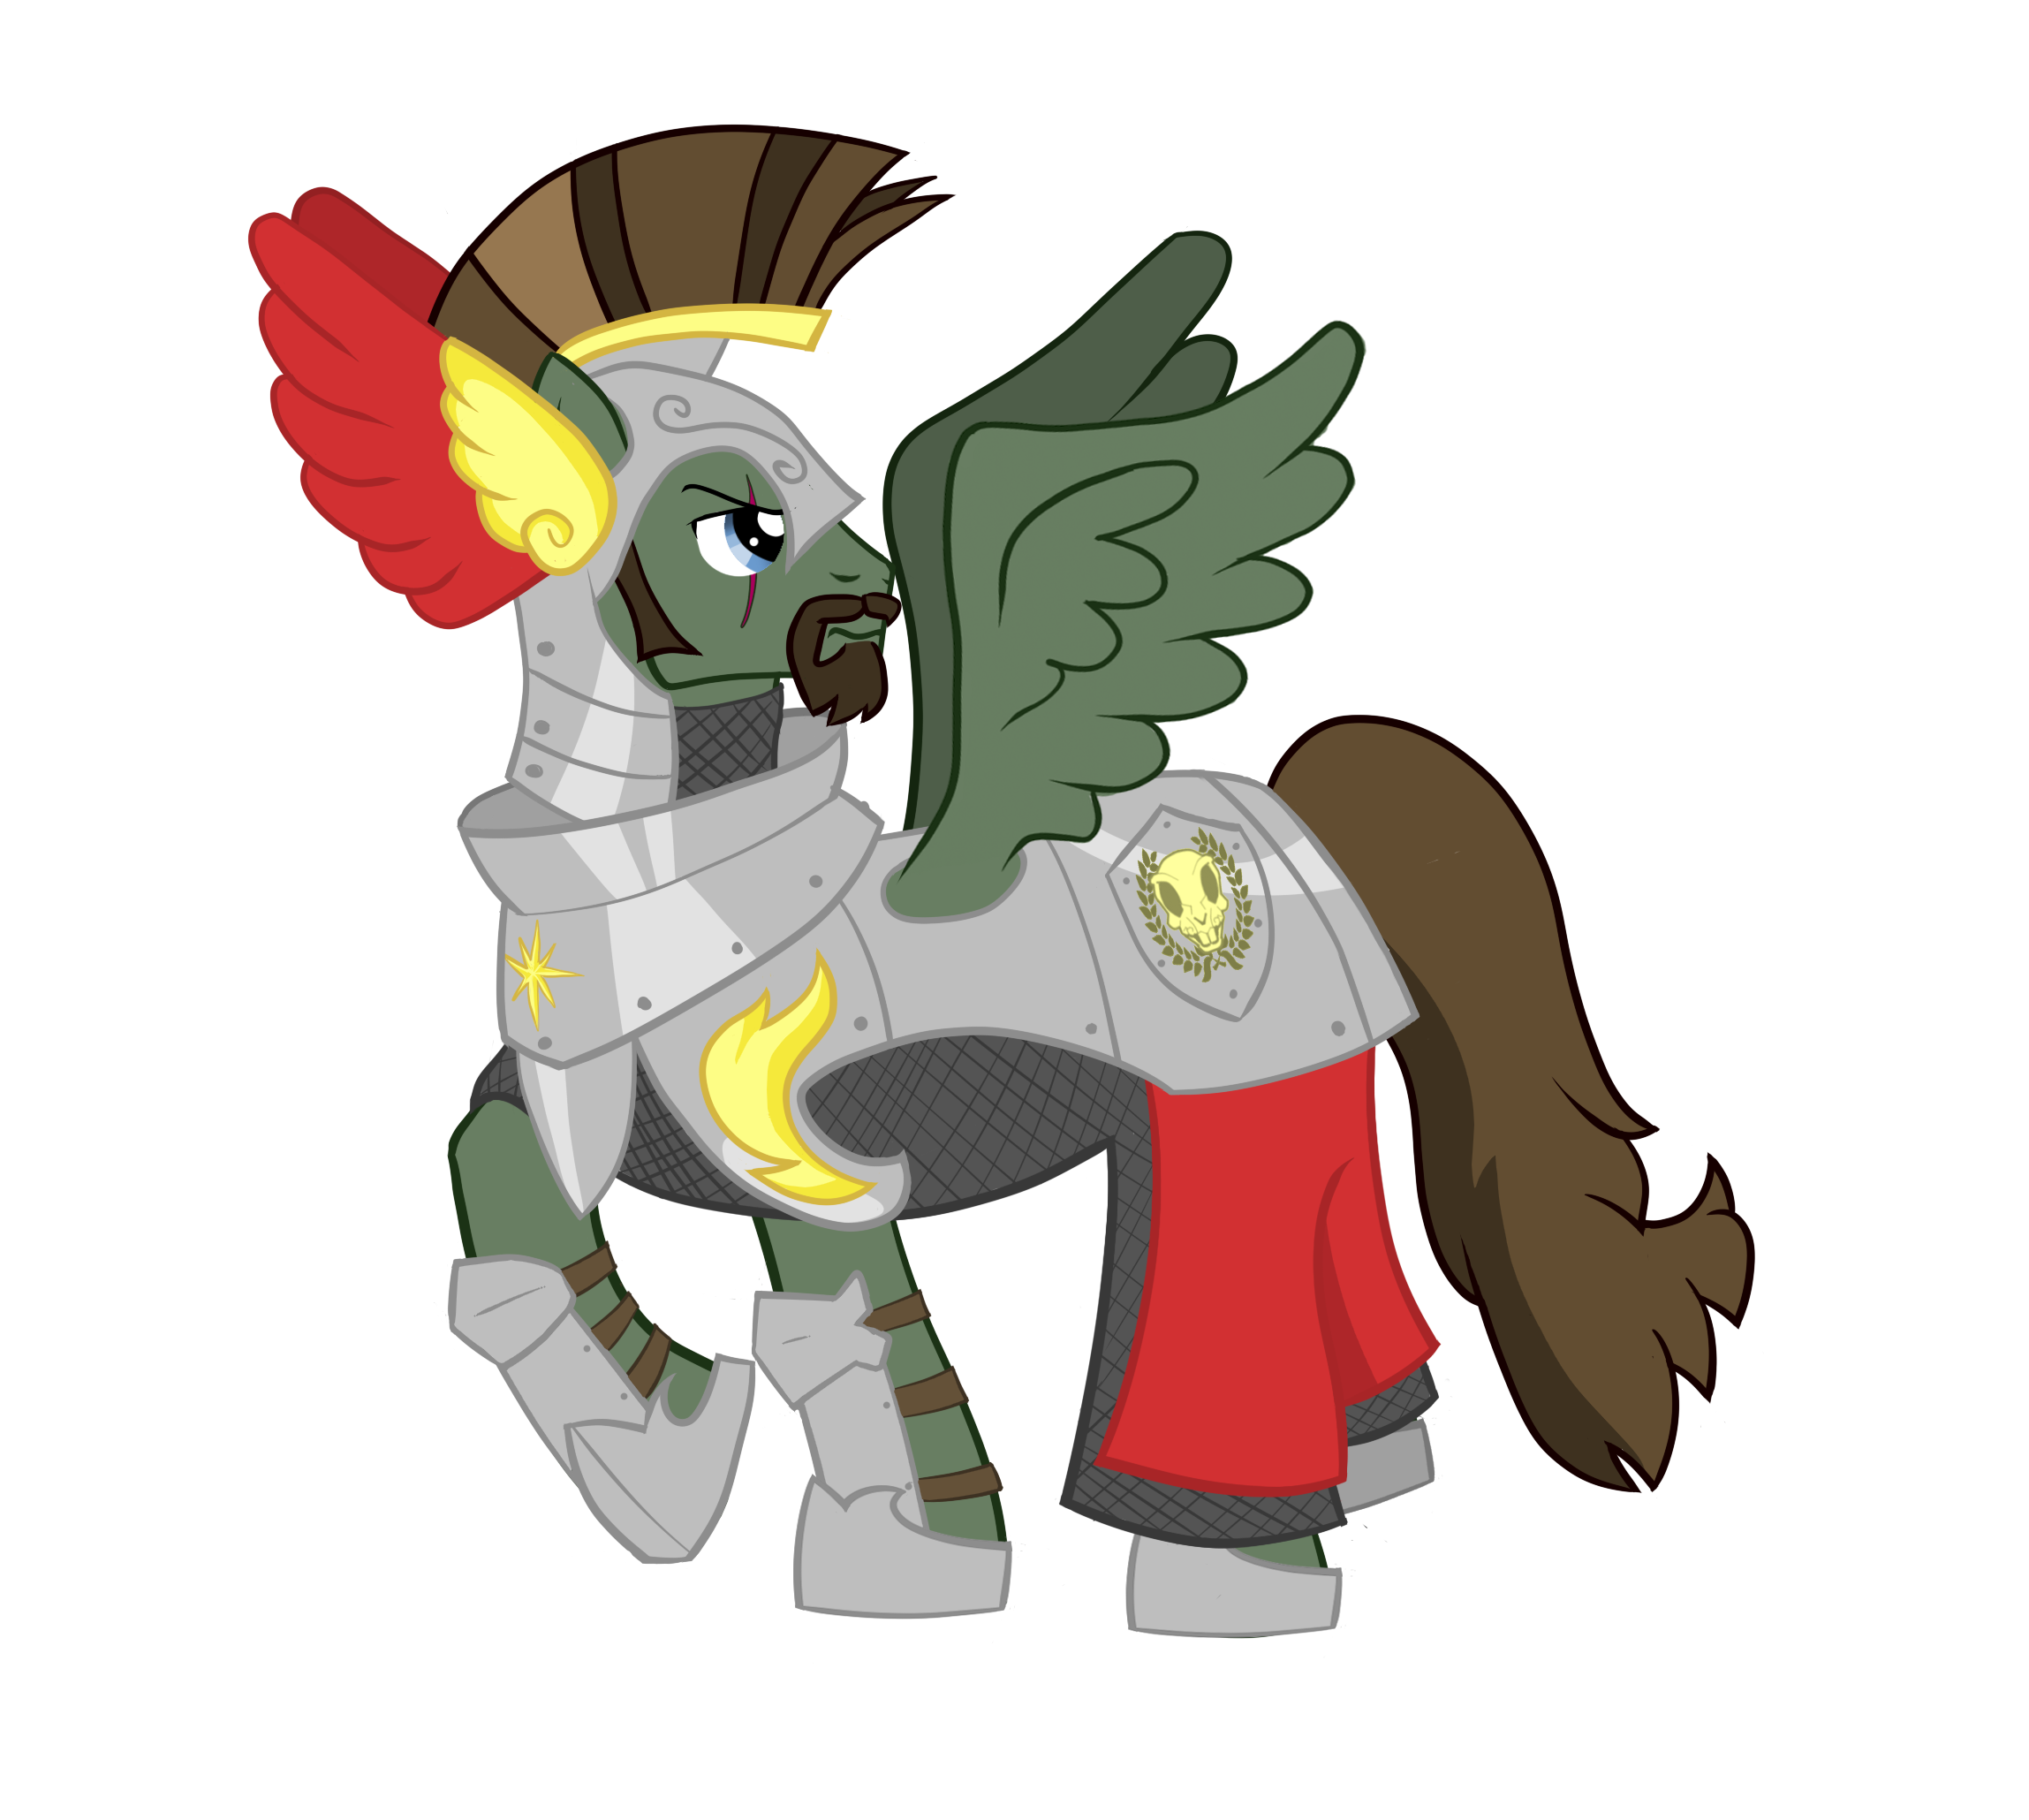 knight_sig_hoovestrong_oc_by_sighoovestrong-d6sshmm.png